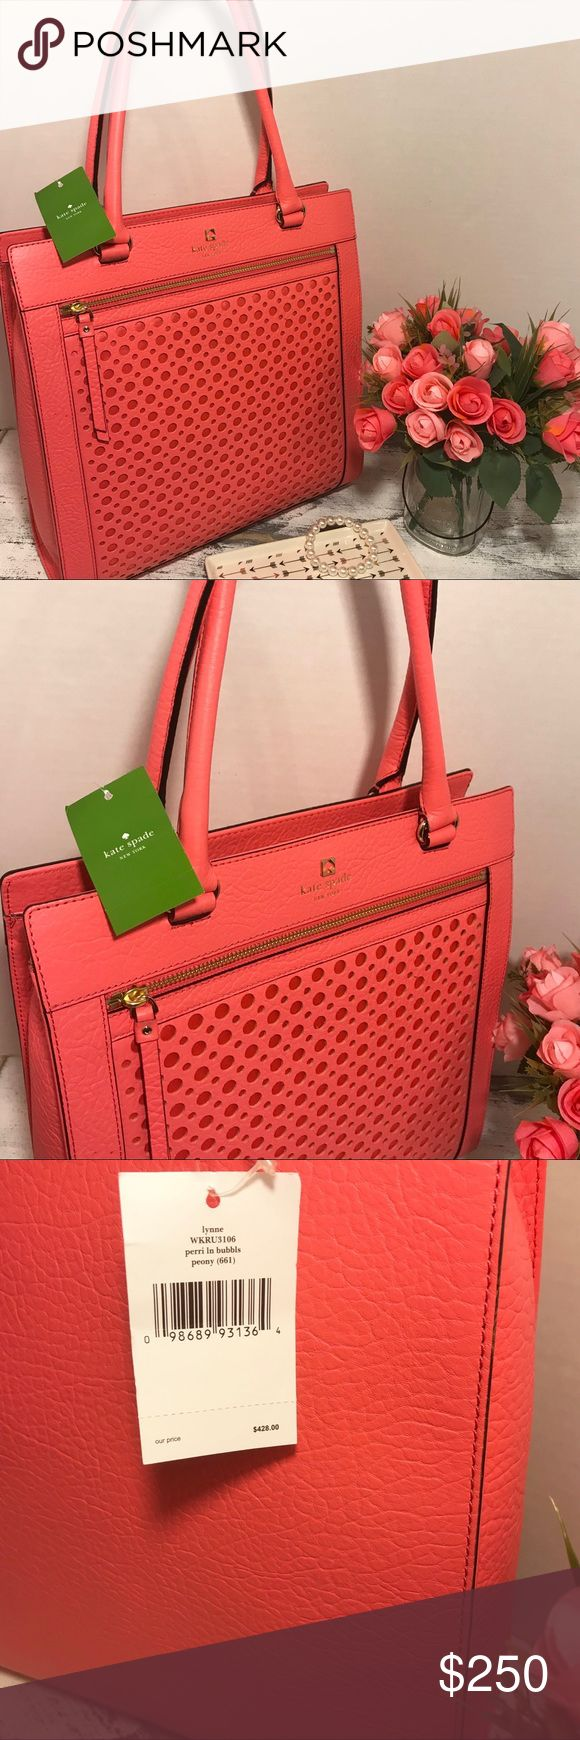 "Cyber Monday Sale NWT Kate Spade Coral handbag NWT $428 13"" L 13"" W 4"" Wide 20"" handles kate spade Bags Shoulder Bags"